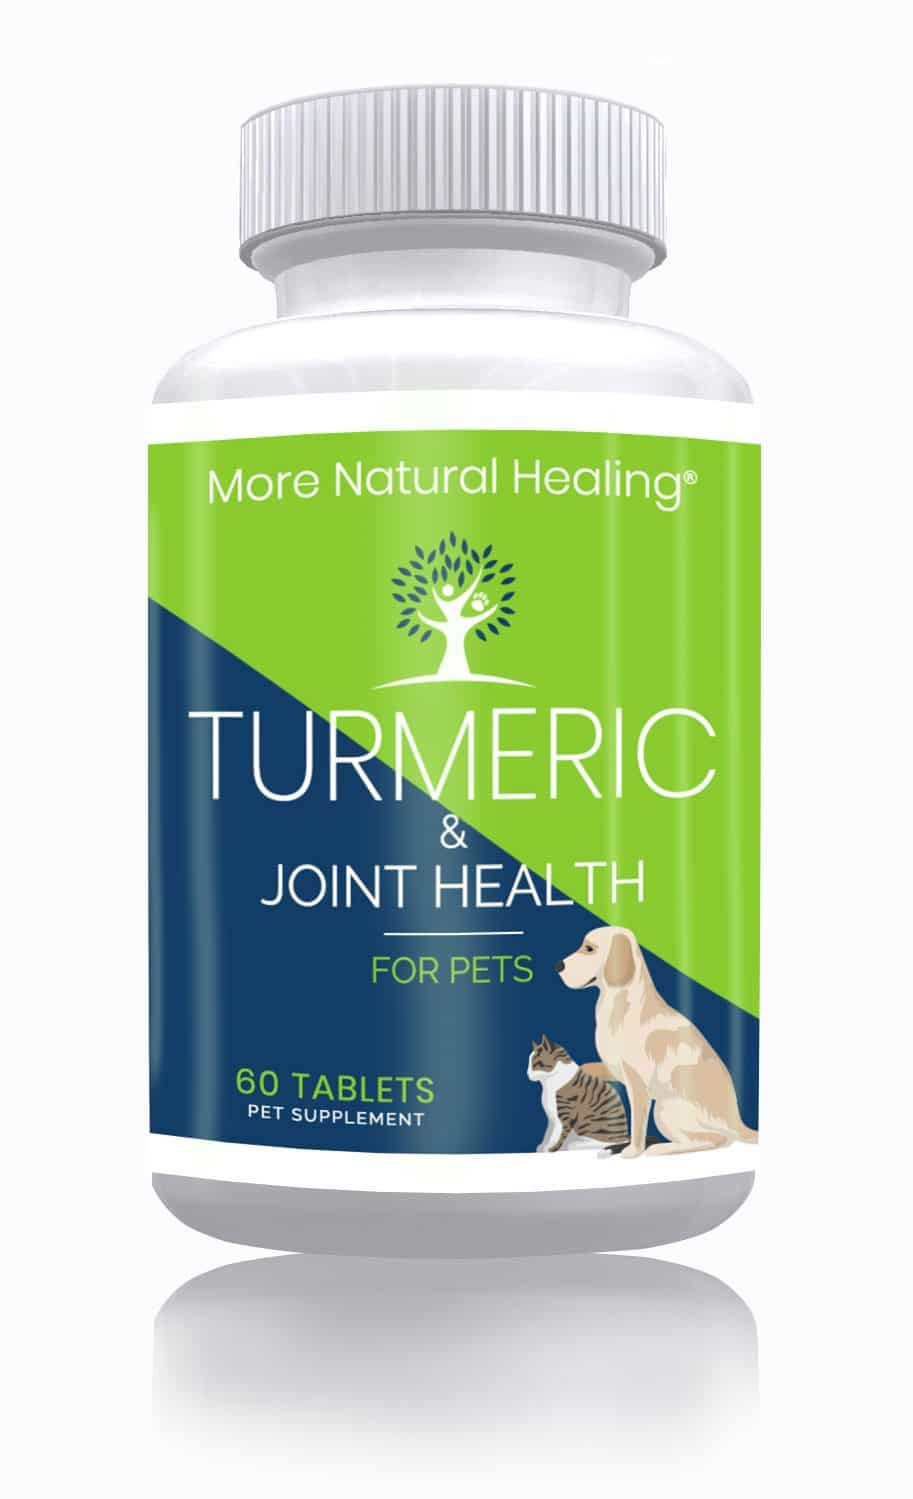 Turmeric & Joint Health Supplement for Pets Anti Inflammatory Tablets - More Natural Healing